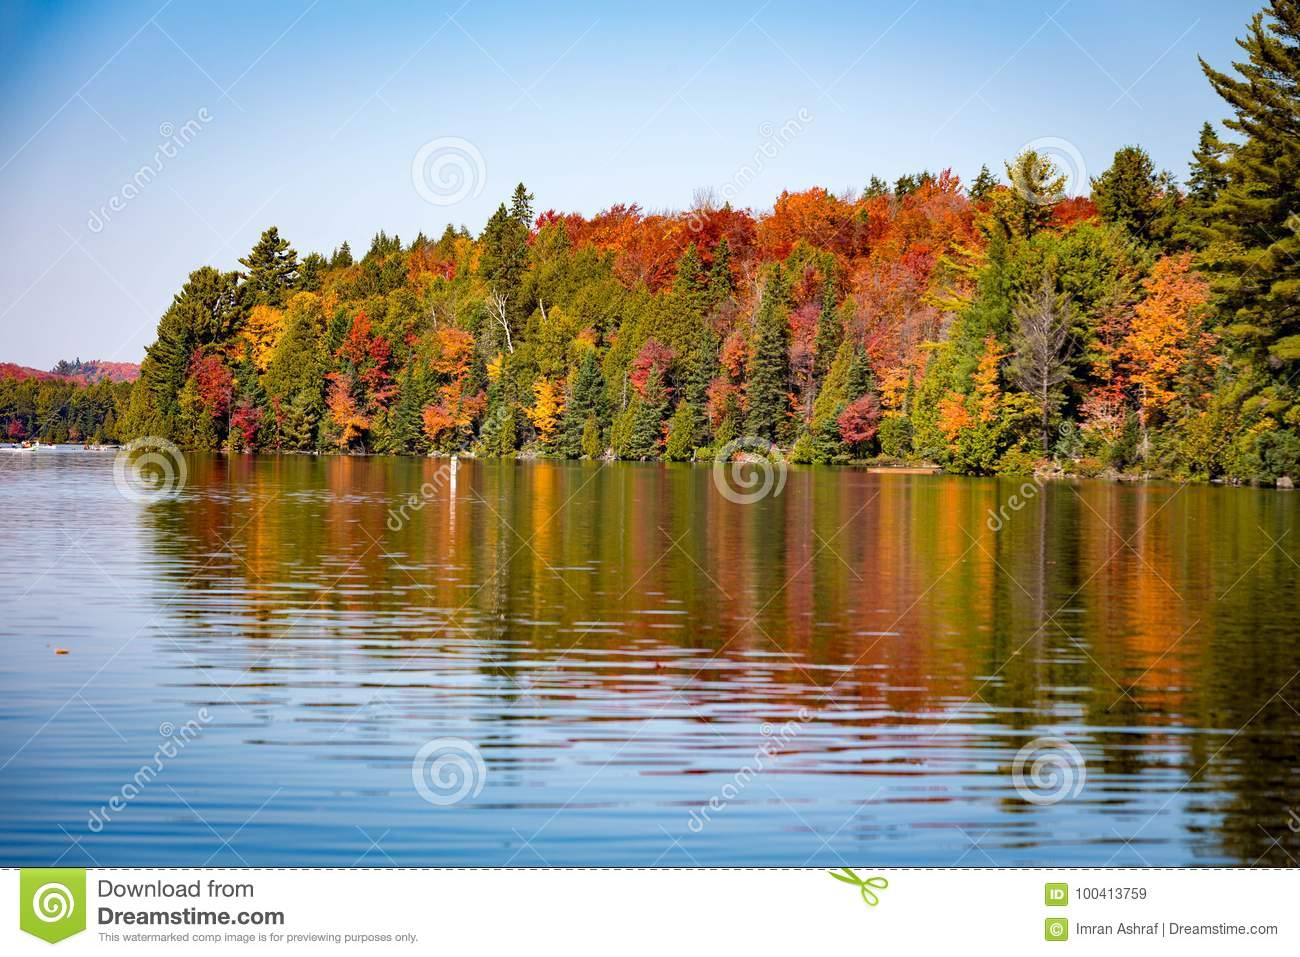 Fall trees with lake